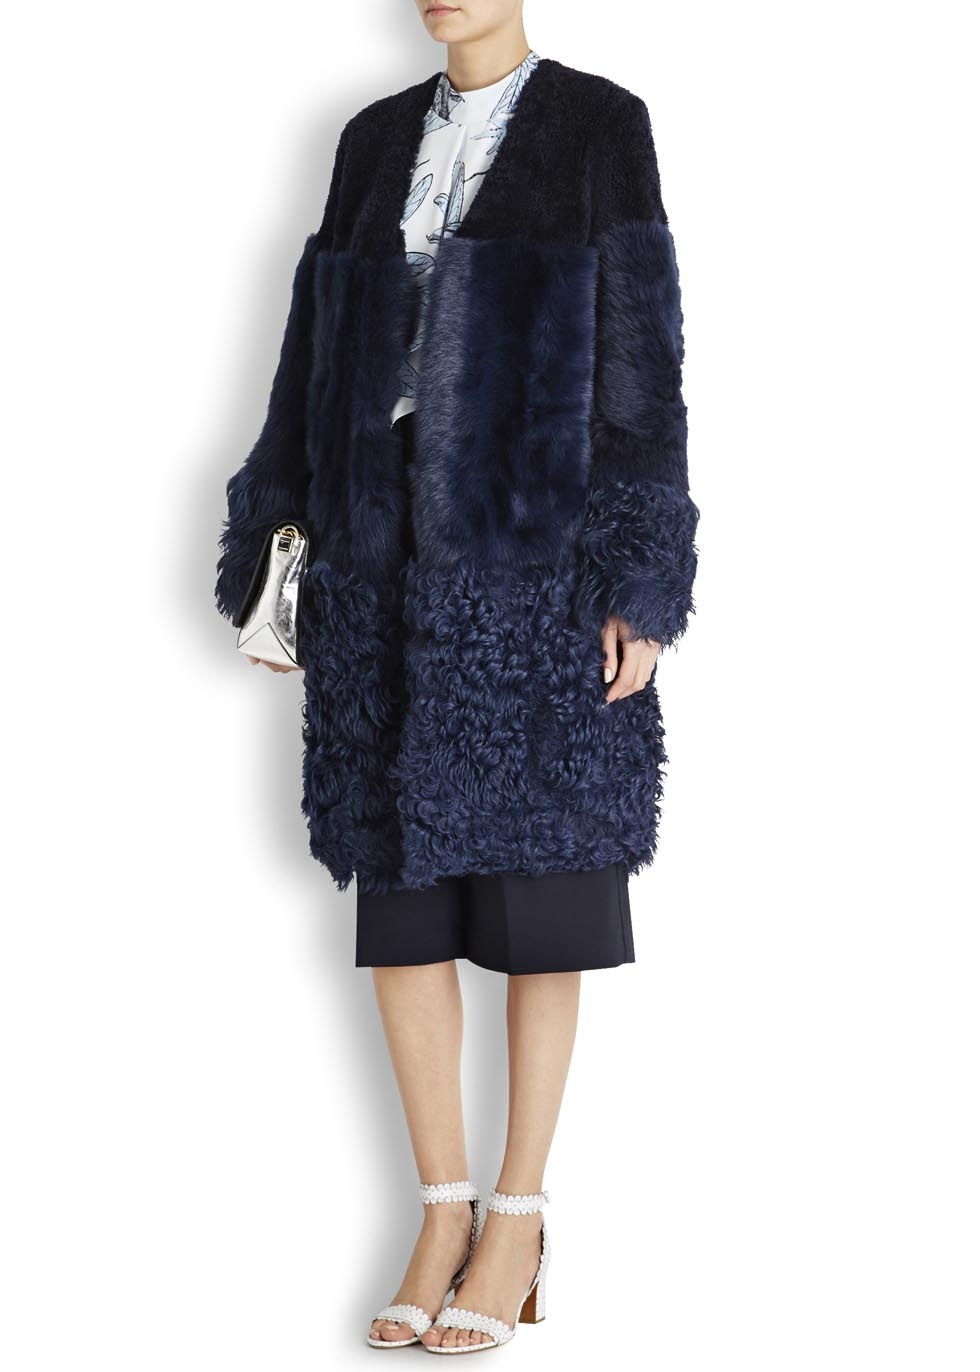 Whistles Cosmo Navy Shearling Coat in Blue | Lyst